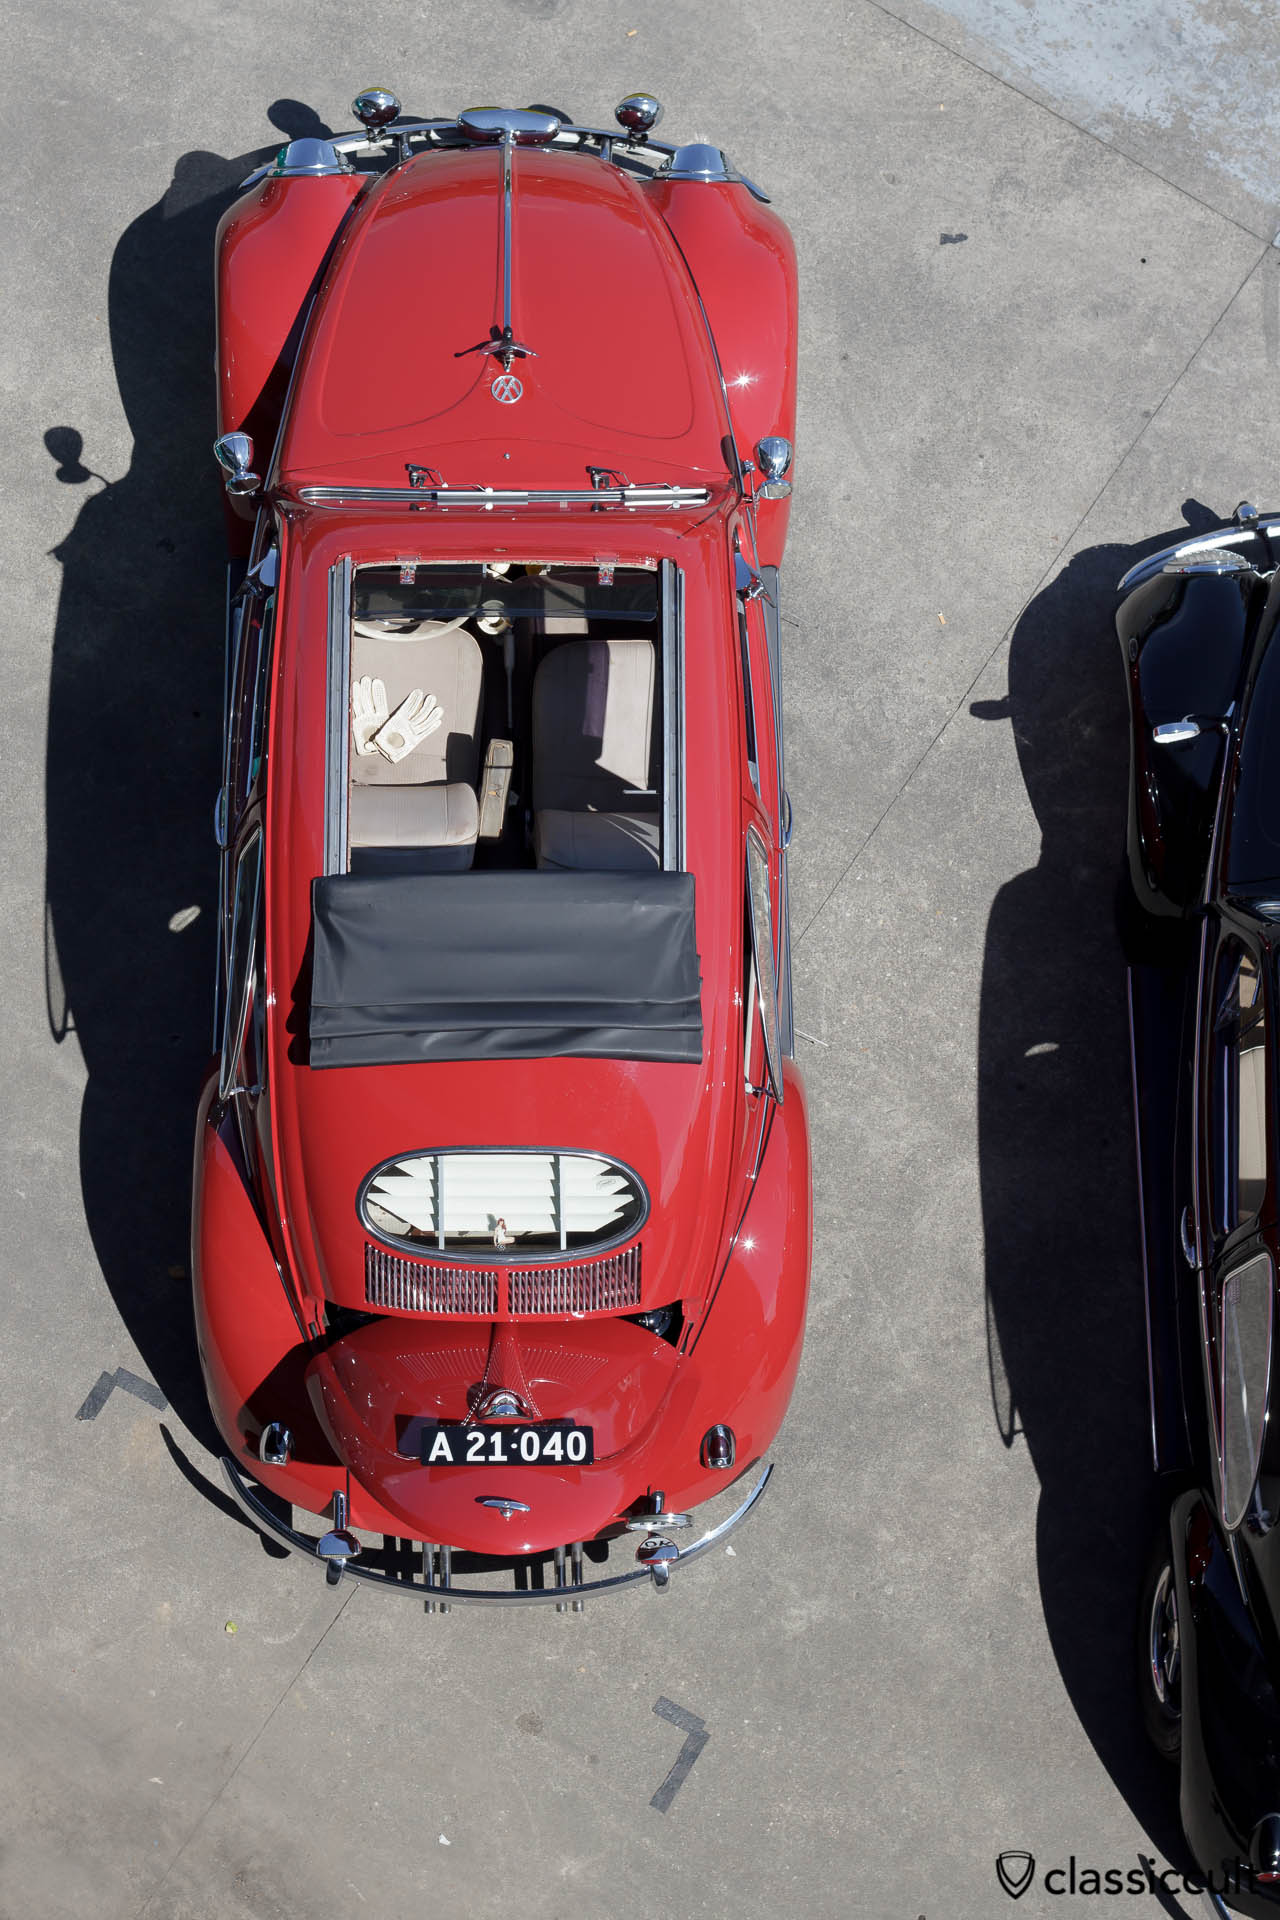 VW Oval Ragtop view from above